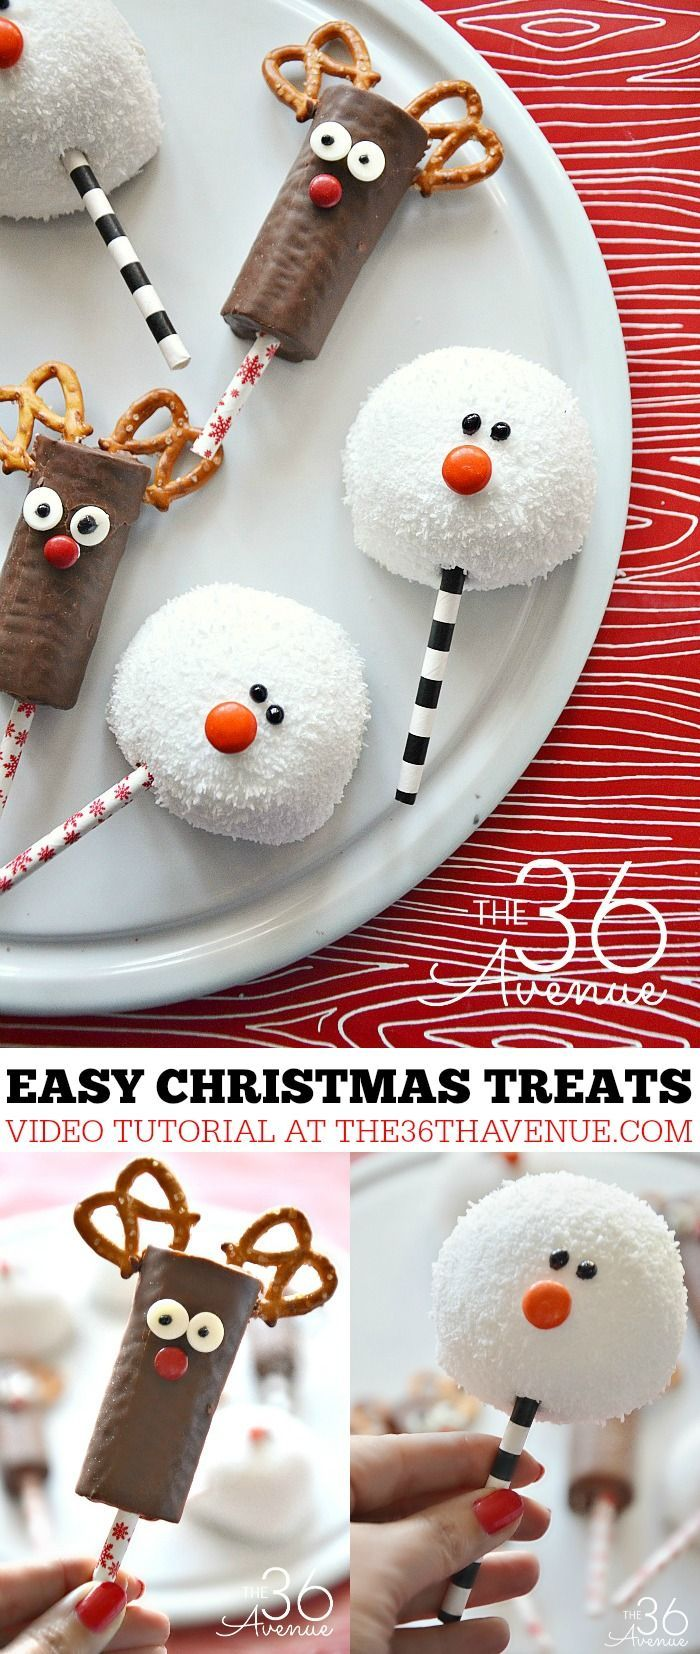 Christmas Recipes - These adorable Christmas Treats are perfect for neighbor gifts